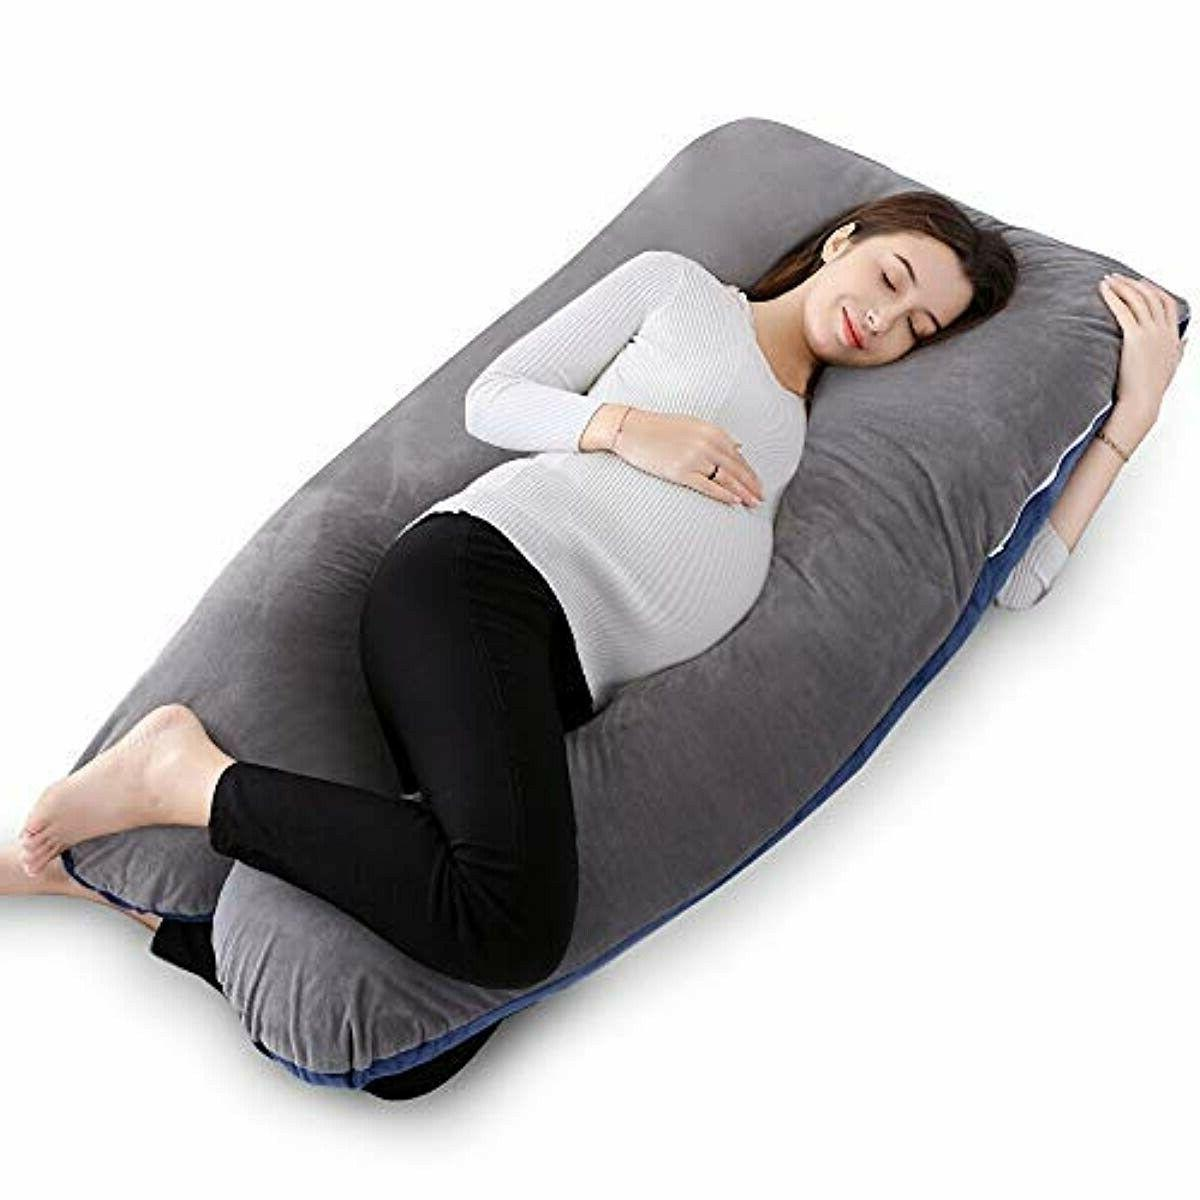 QUEEN ROSE 55in Pregnancy Pillow and Body Pillow with Velvet